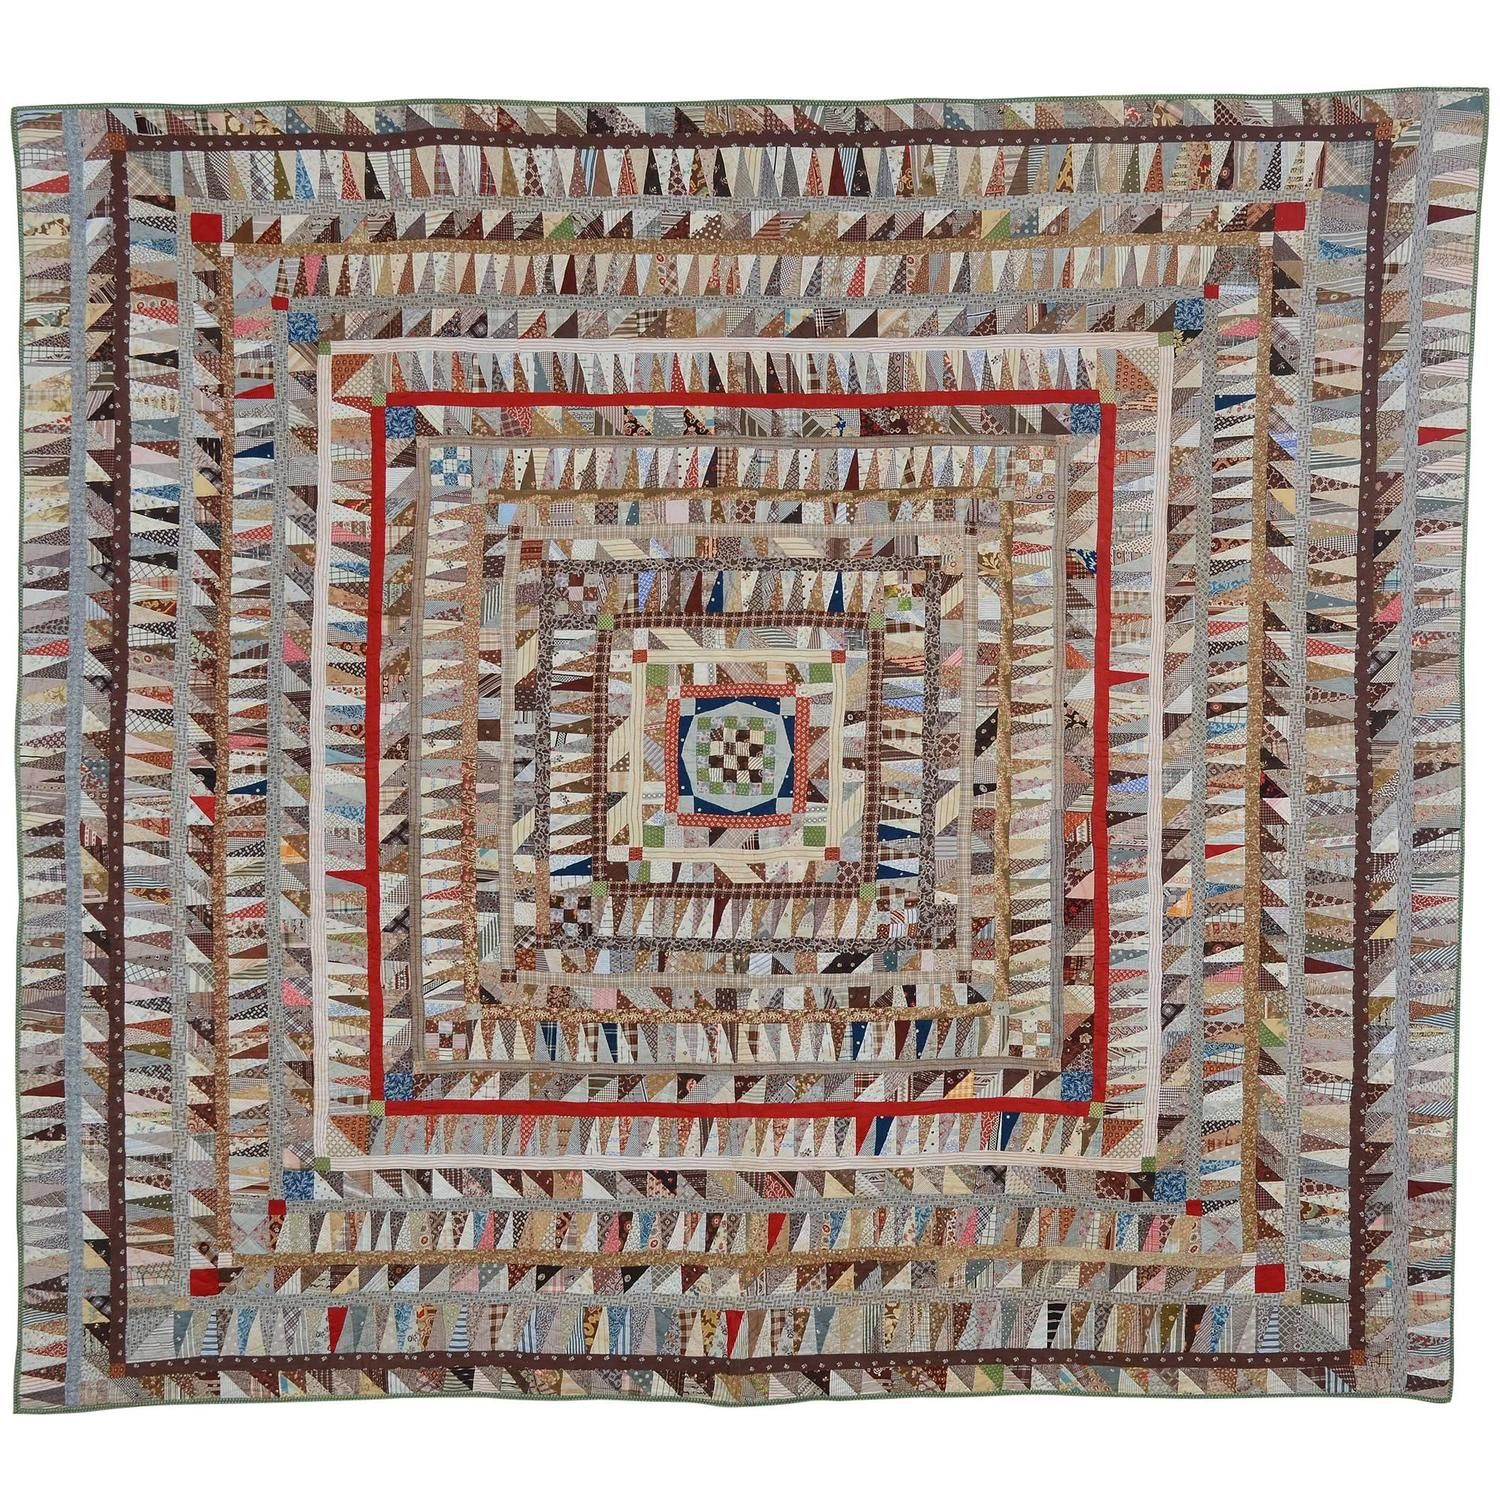 highly pieced center medallion quilt  quilts for sale quilt and  - highly pieced center medallion quilt